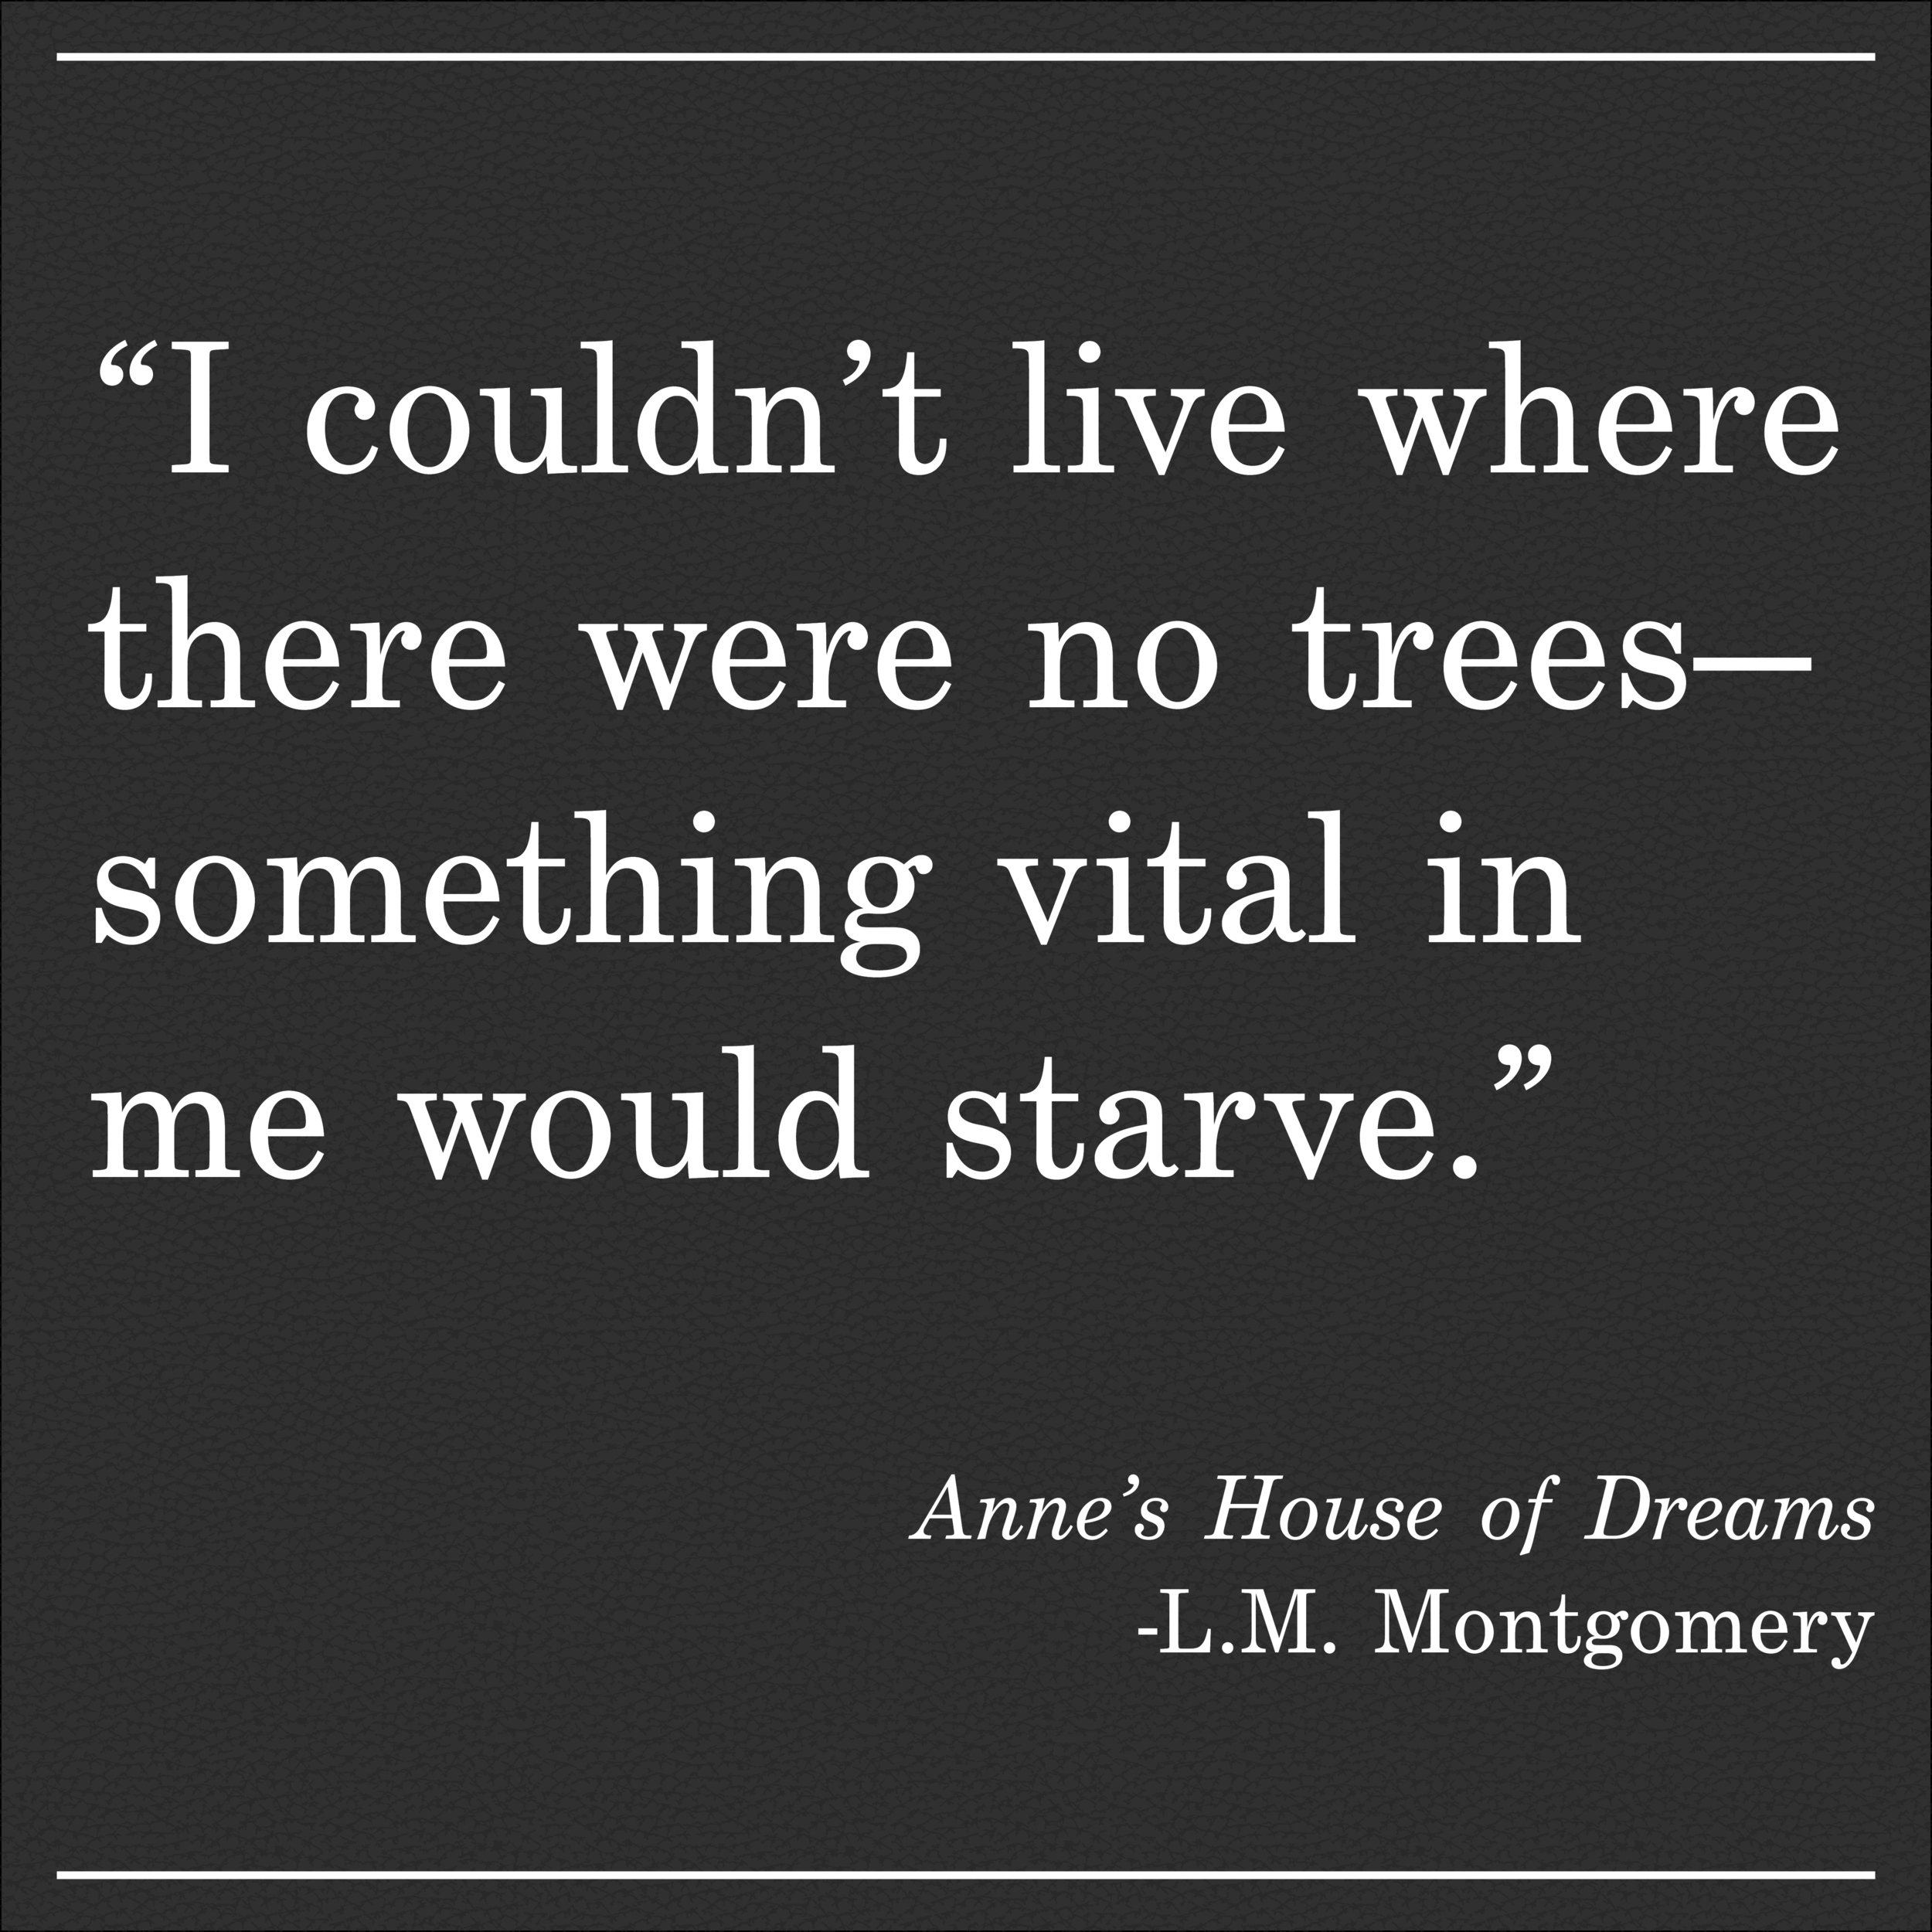 Daily Quote LM Montgomery Anne's House of Dreams